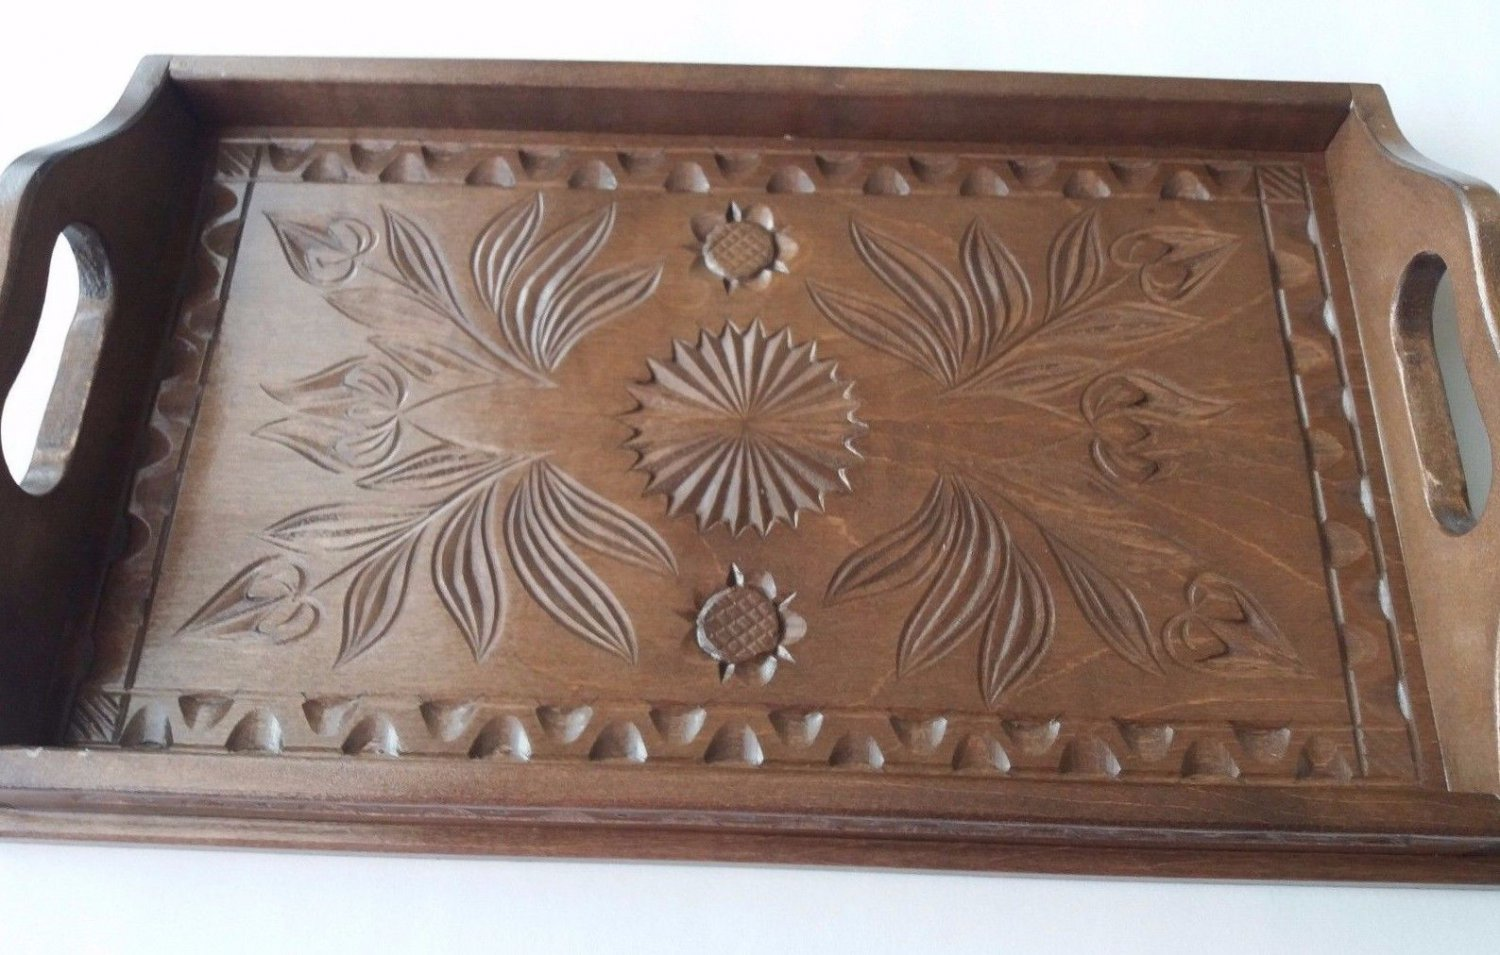 Brown maple wood small carved tray salver plate home decor serving dish unique